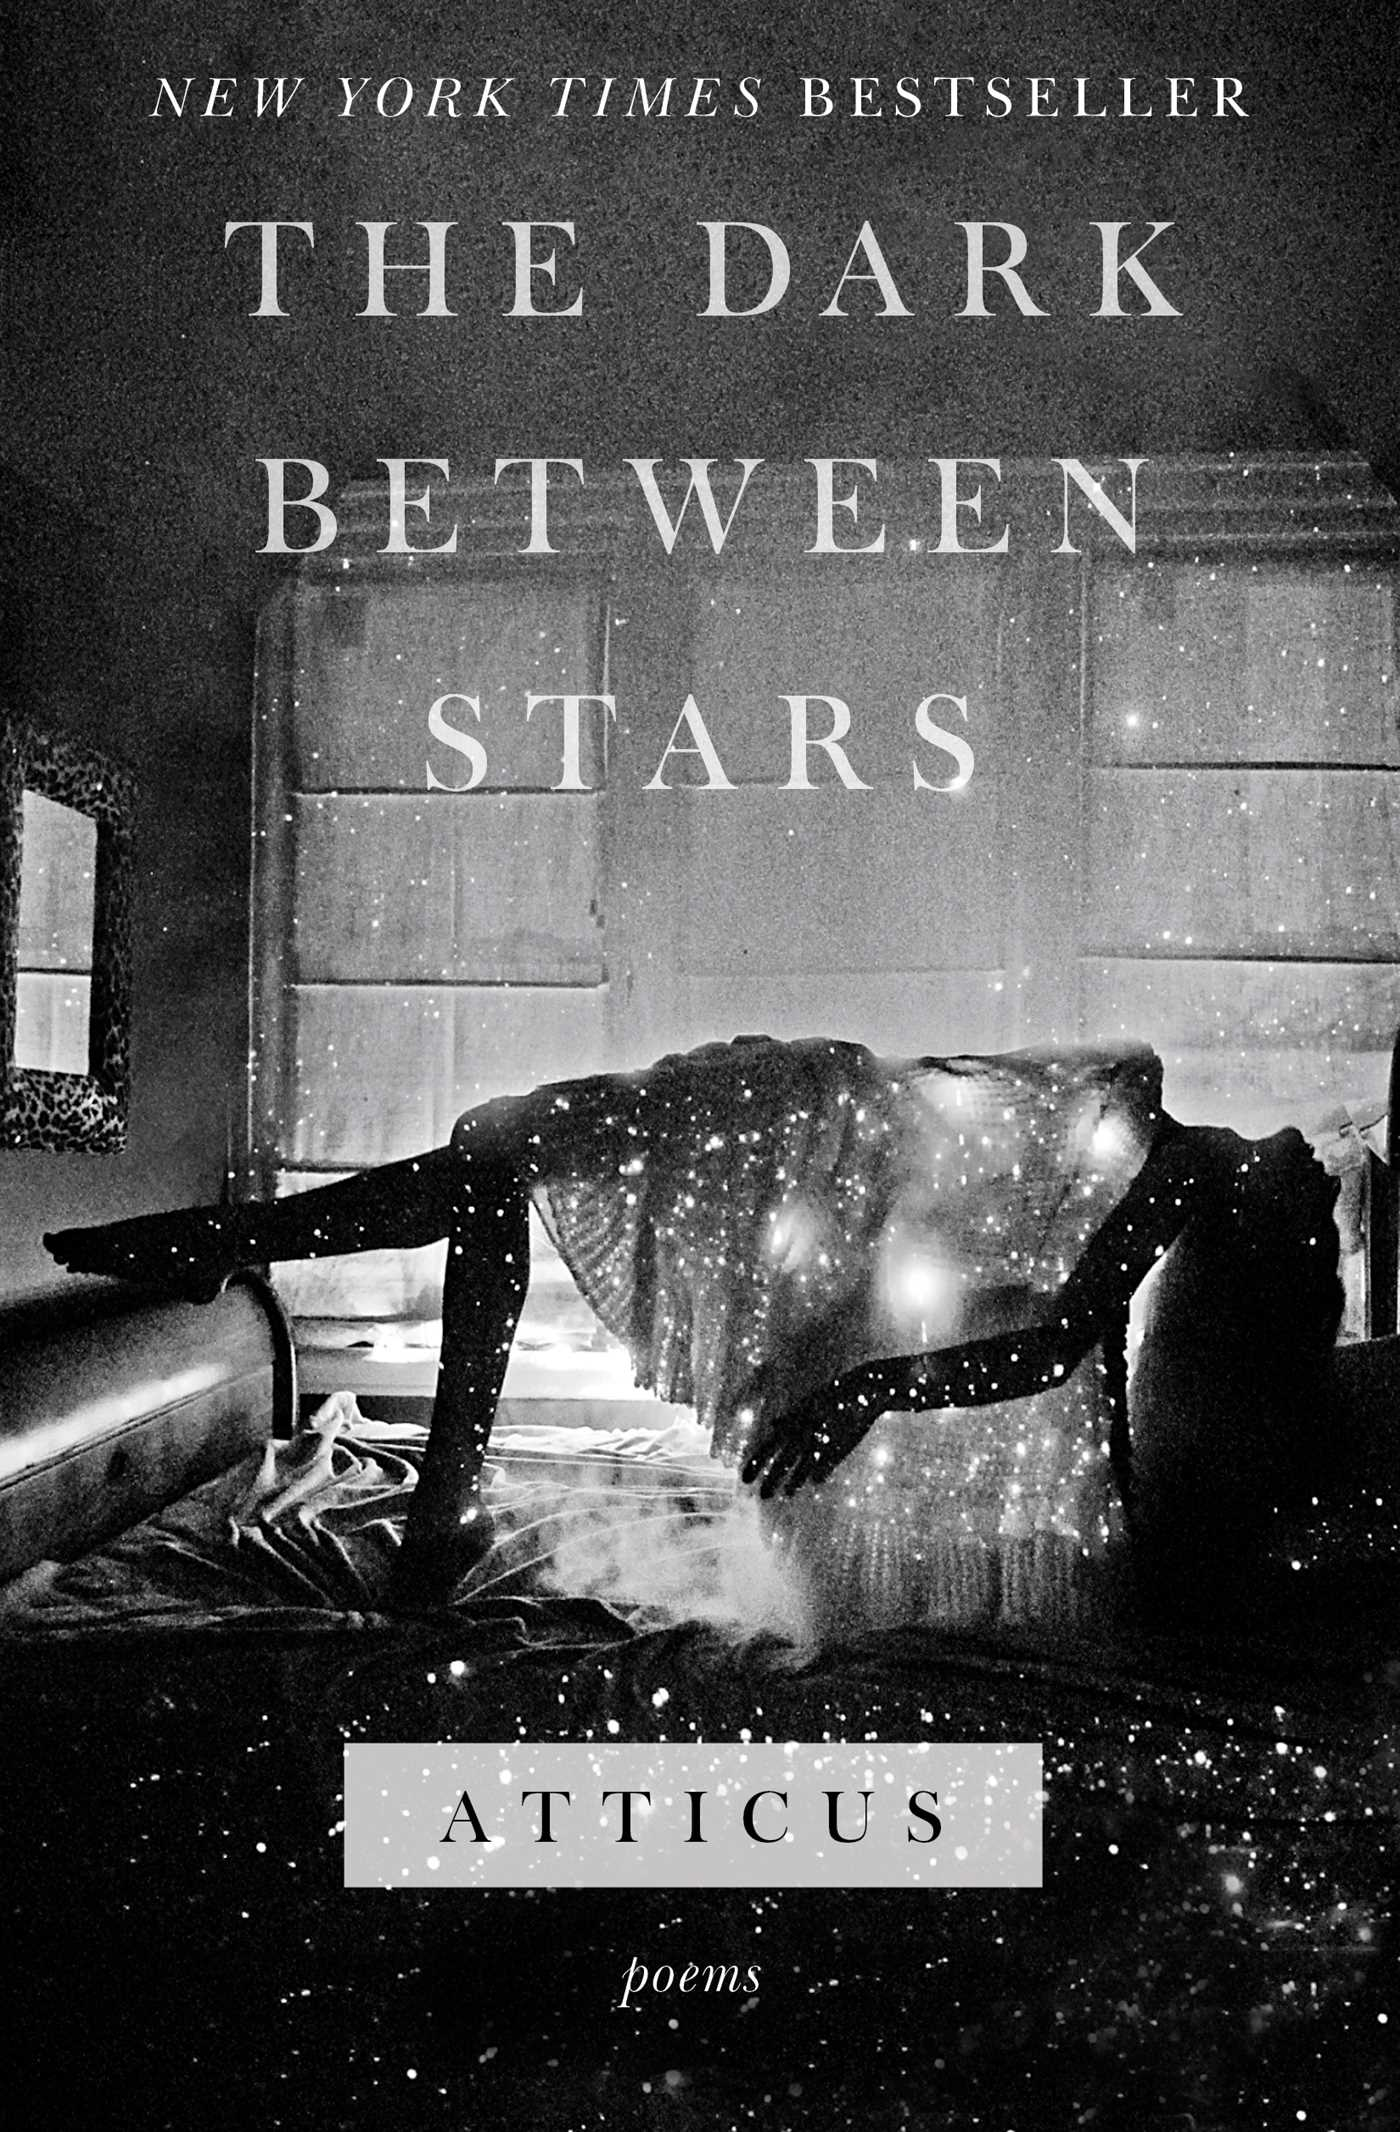 Image result for The Dark Between the Stars by Atticus